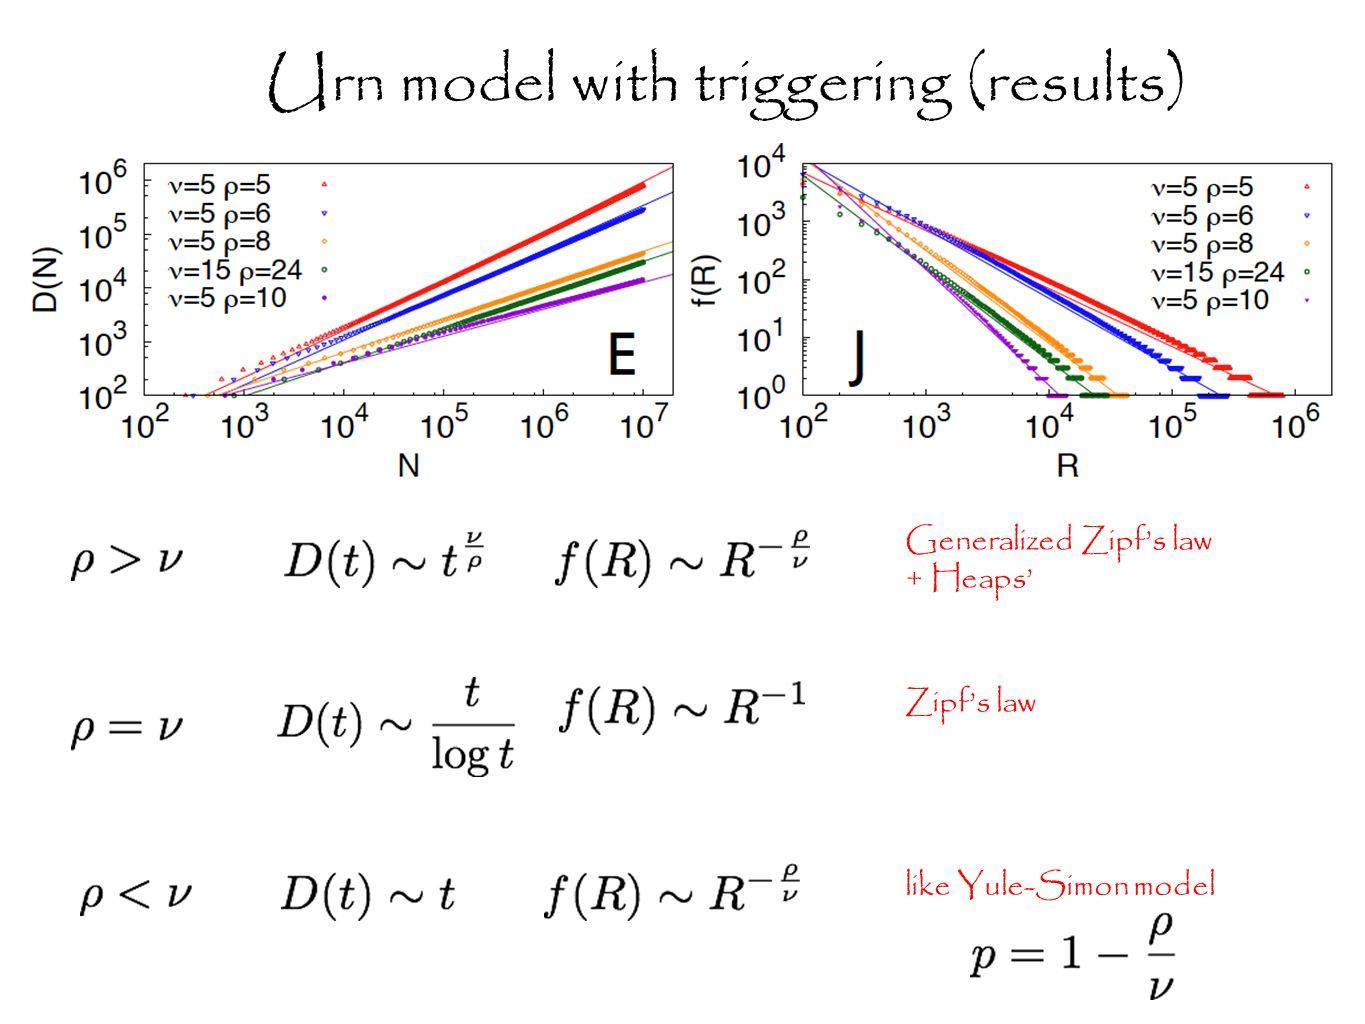 like Yule-Simon model Zipfs law Generalized Zipfs law + Heaps Urn model with triggering (results)